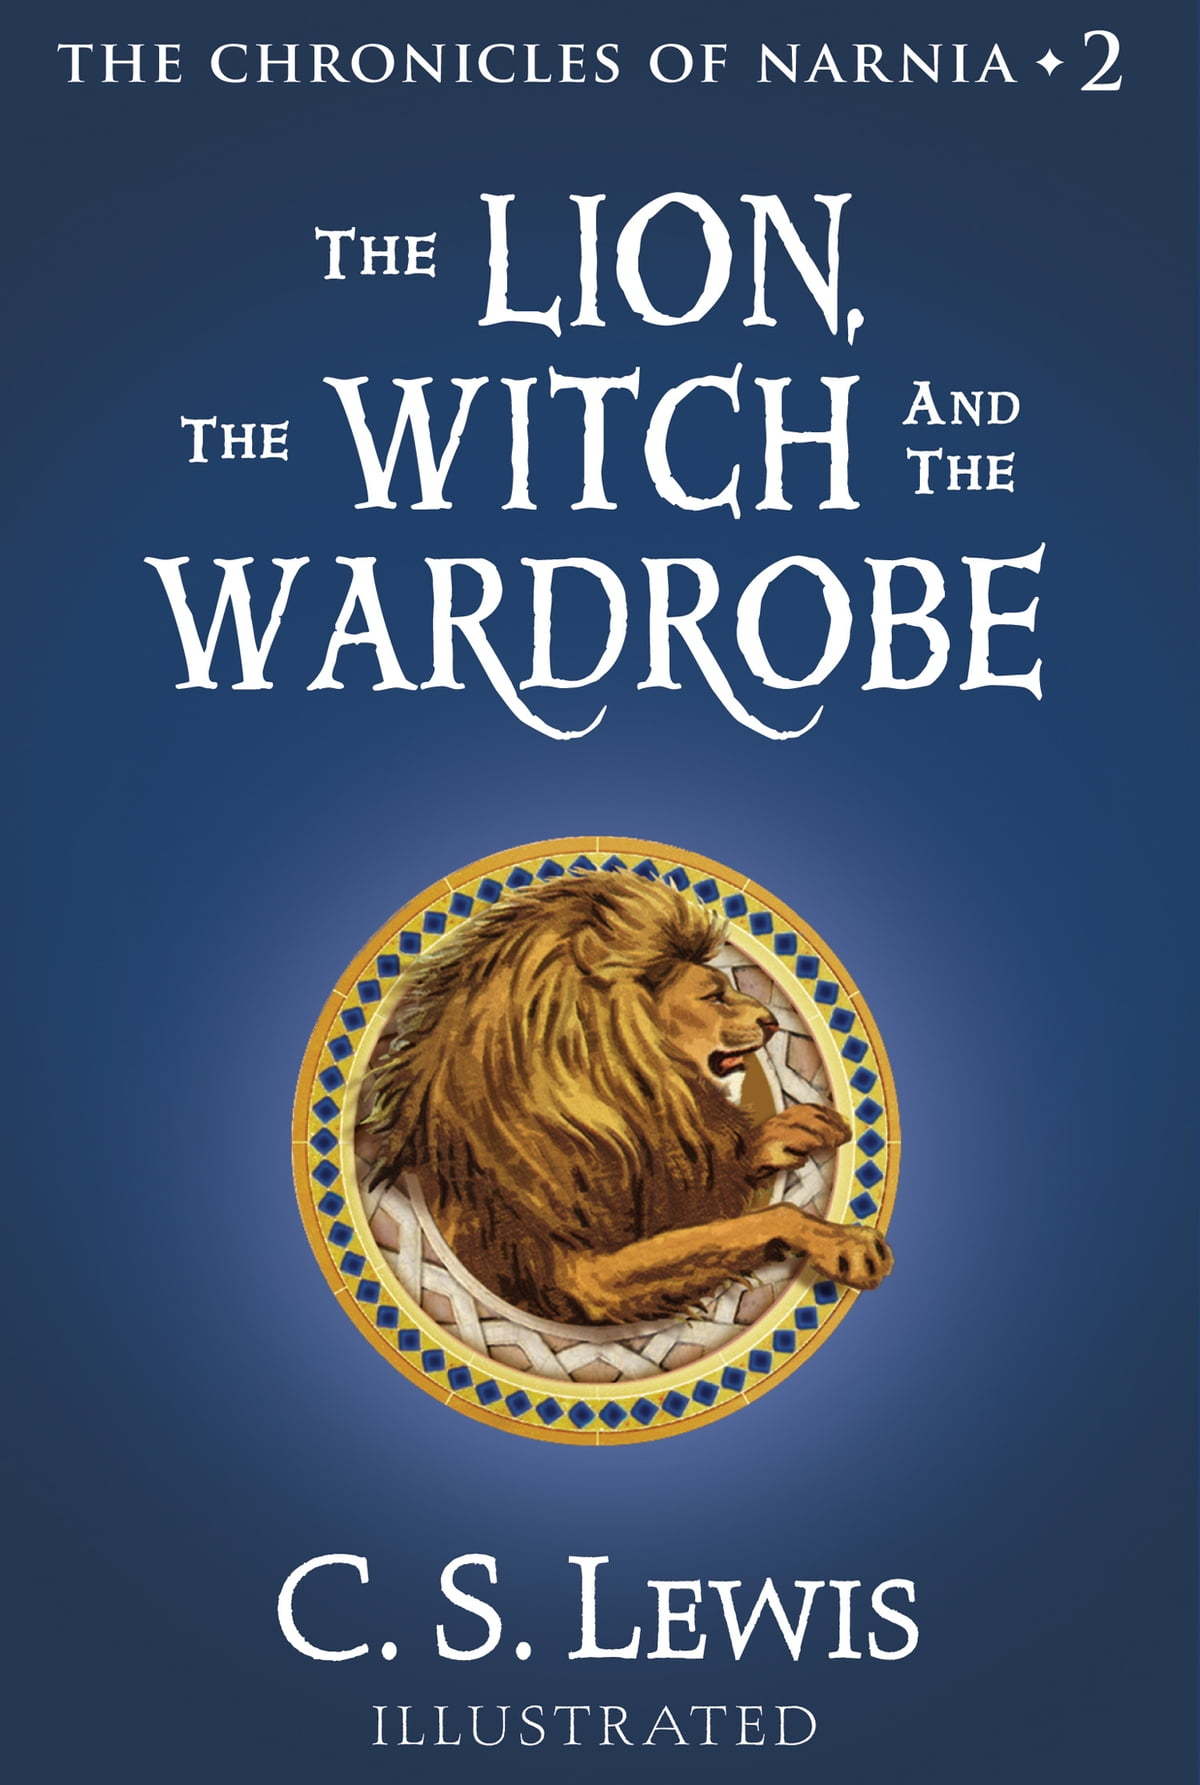 The Lion, the Witch and the Wardrobe (The Chronicles of Narnia, Book 2)  eBook by C. S. Lewis - 9780007325054 | Rakuten Kobo United Kingdom